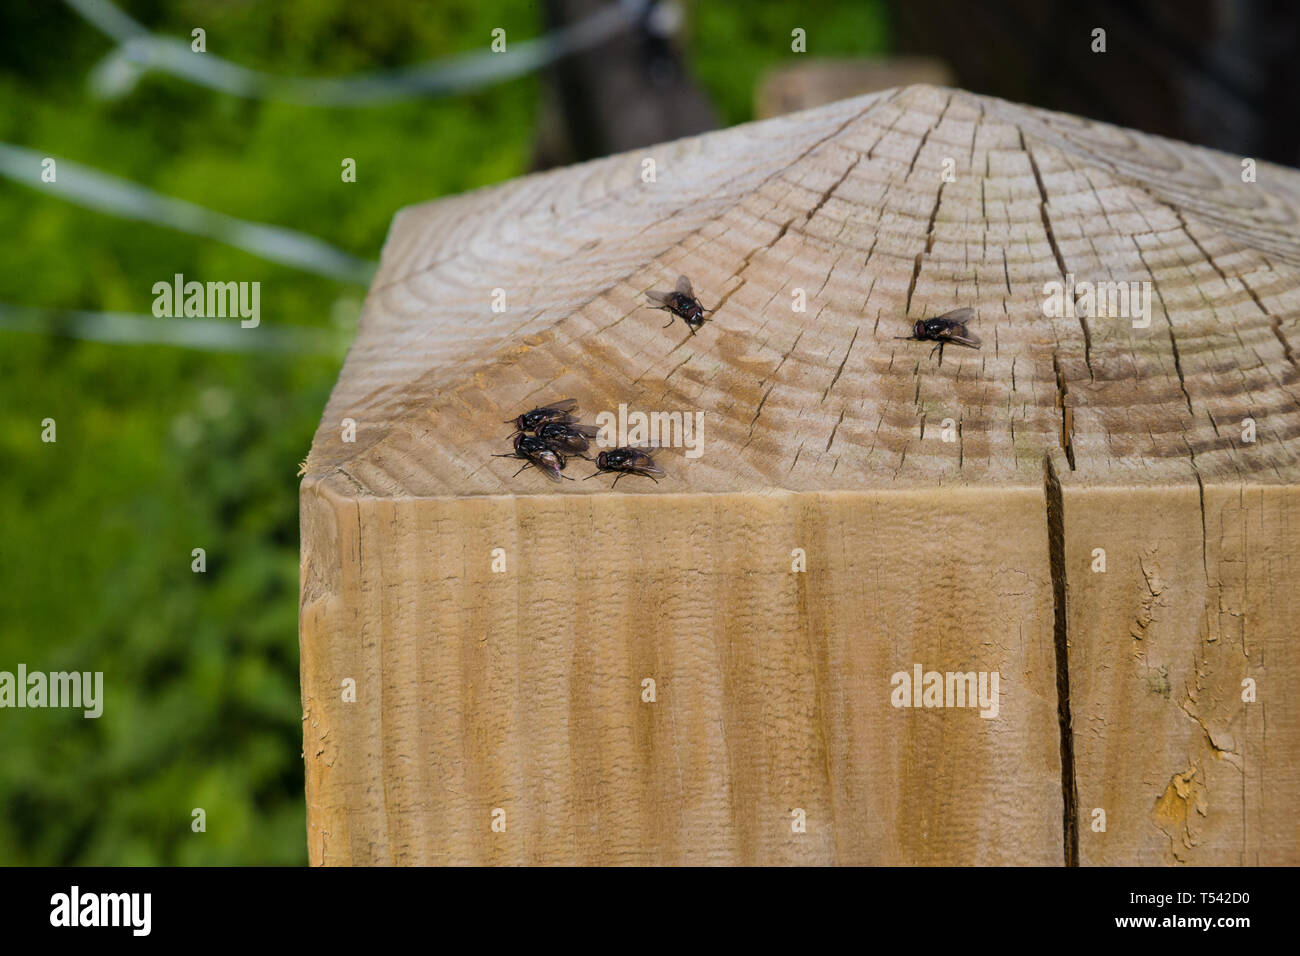 UK. Flies on a fence post on a warm spring day in England. - Stock Image